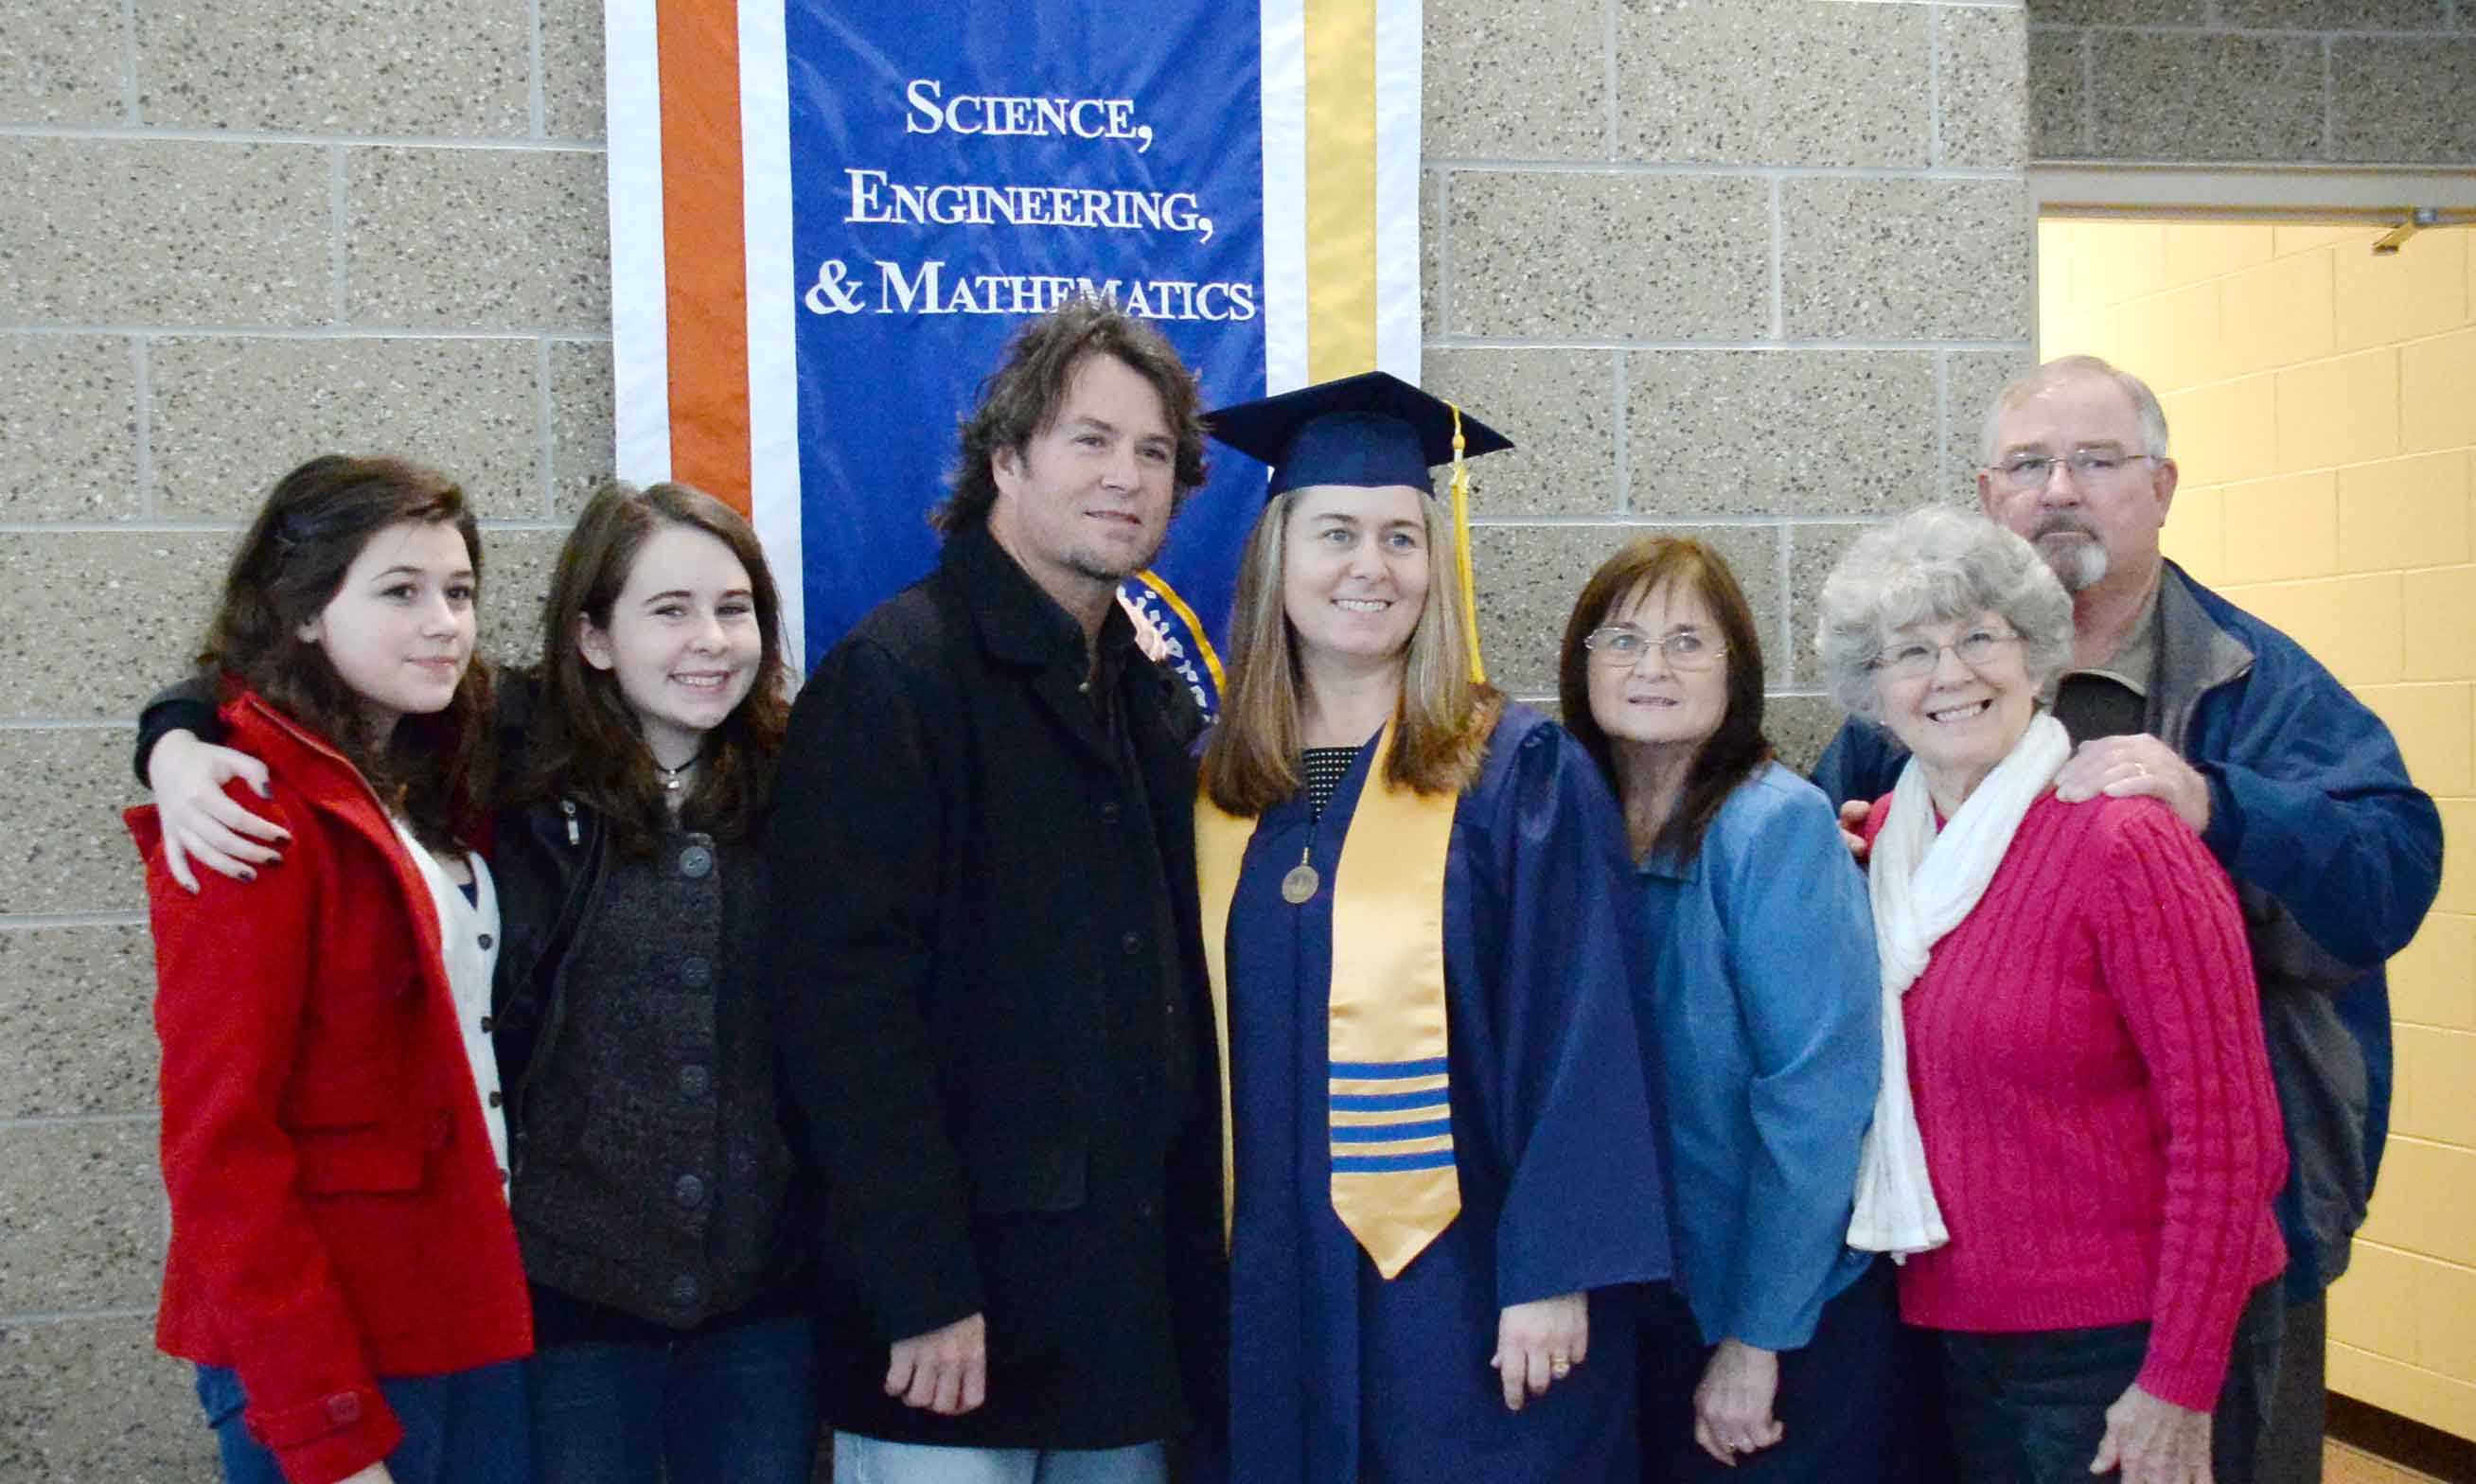 Parents and Family with their Vincennes University graduate in cap and gown